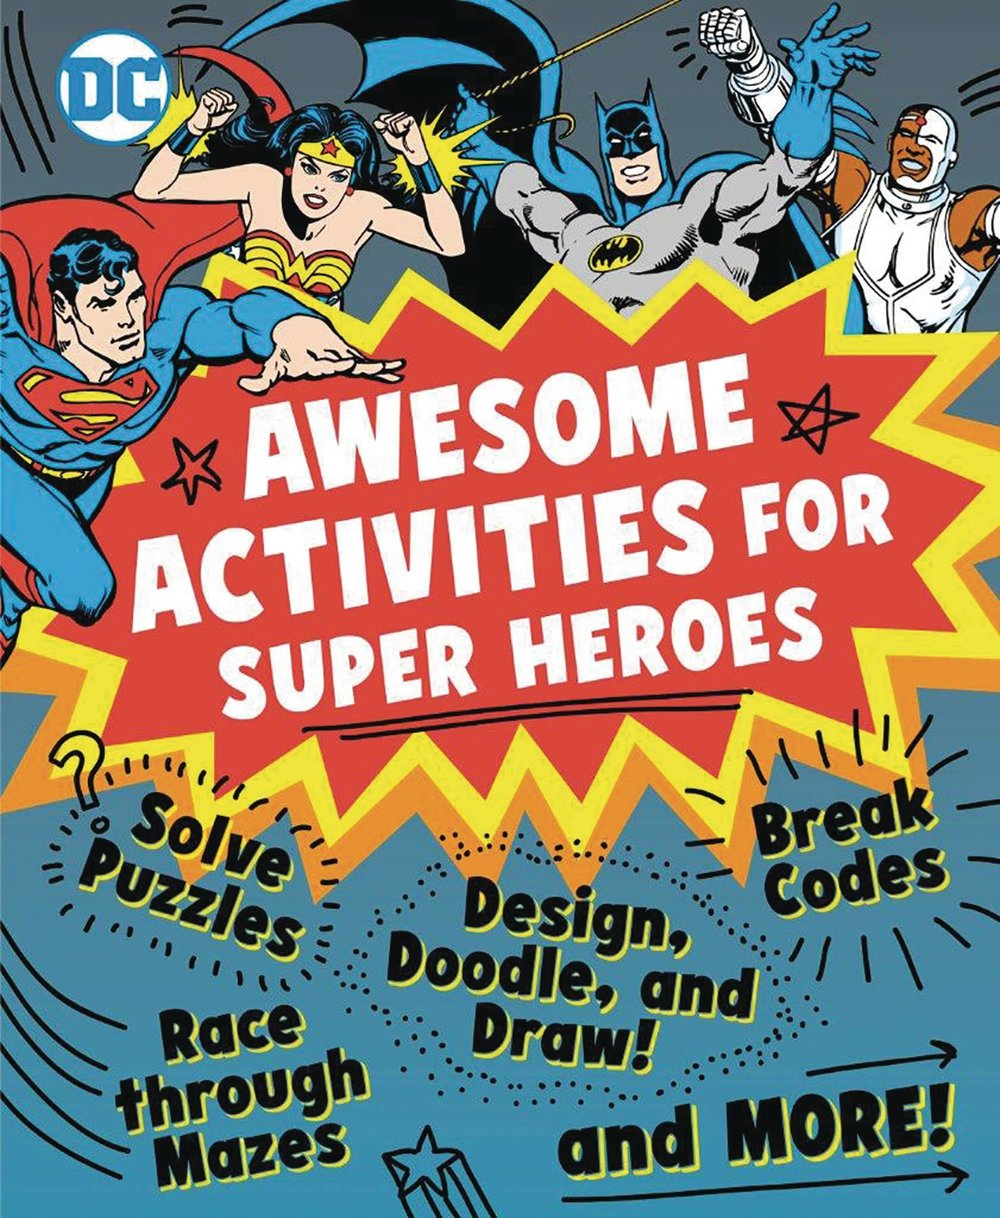 AWESOME ACTIVITIES FOR SUPER HEROES SC.jpg